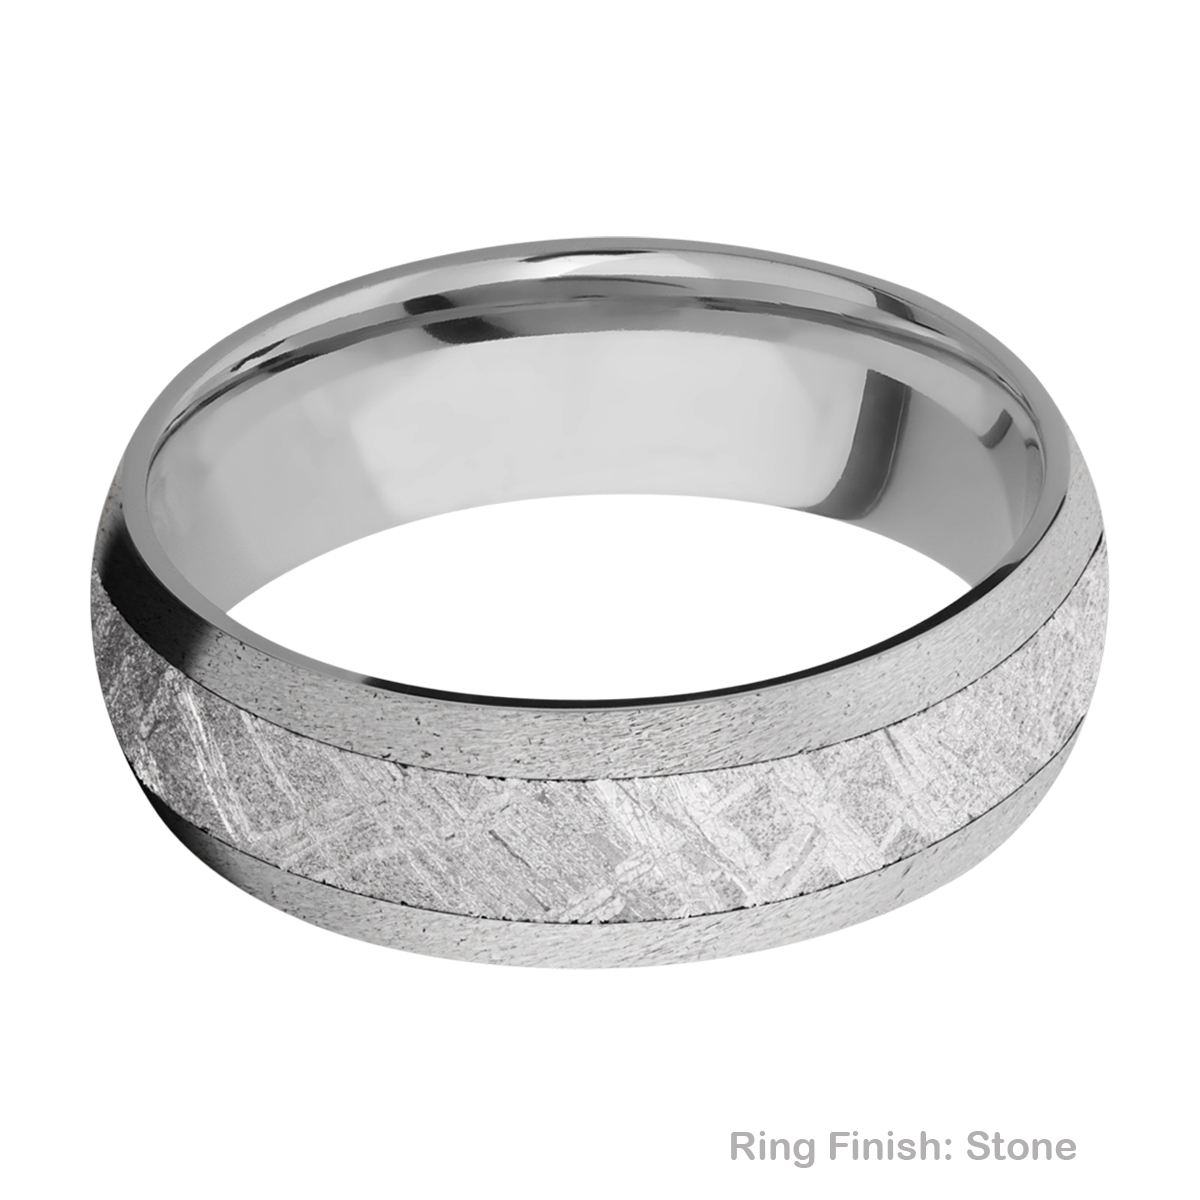 Lashbrook 7D14/METEORITE Titanium Wedding Ring or Band Alternative View 6